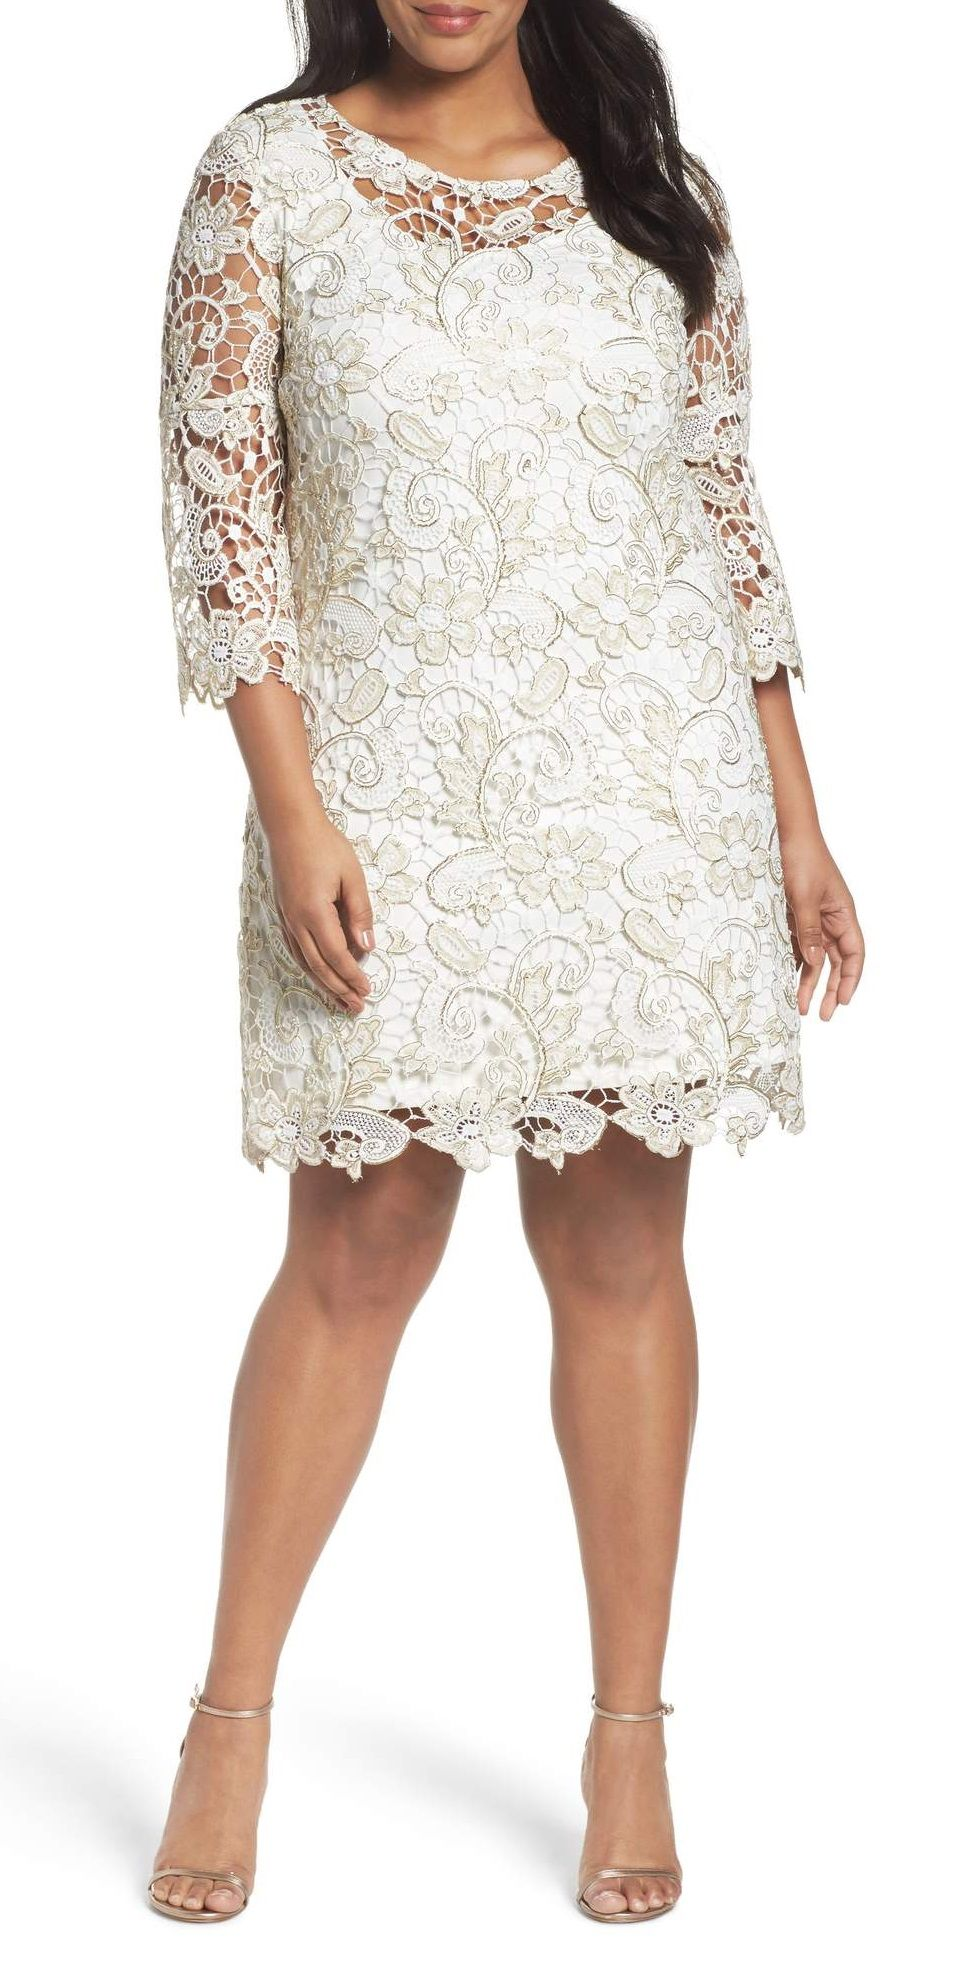 Plus Size Bell Sleeve Lace Shift Dress Lace Shift Dress Plus Size Cocktail Dresses Dresses With Sleeves [ 1976 x 961 Pixel ]